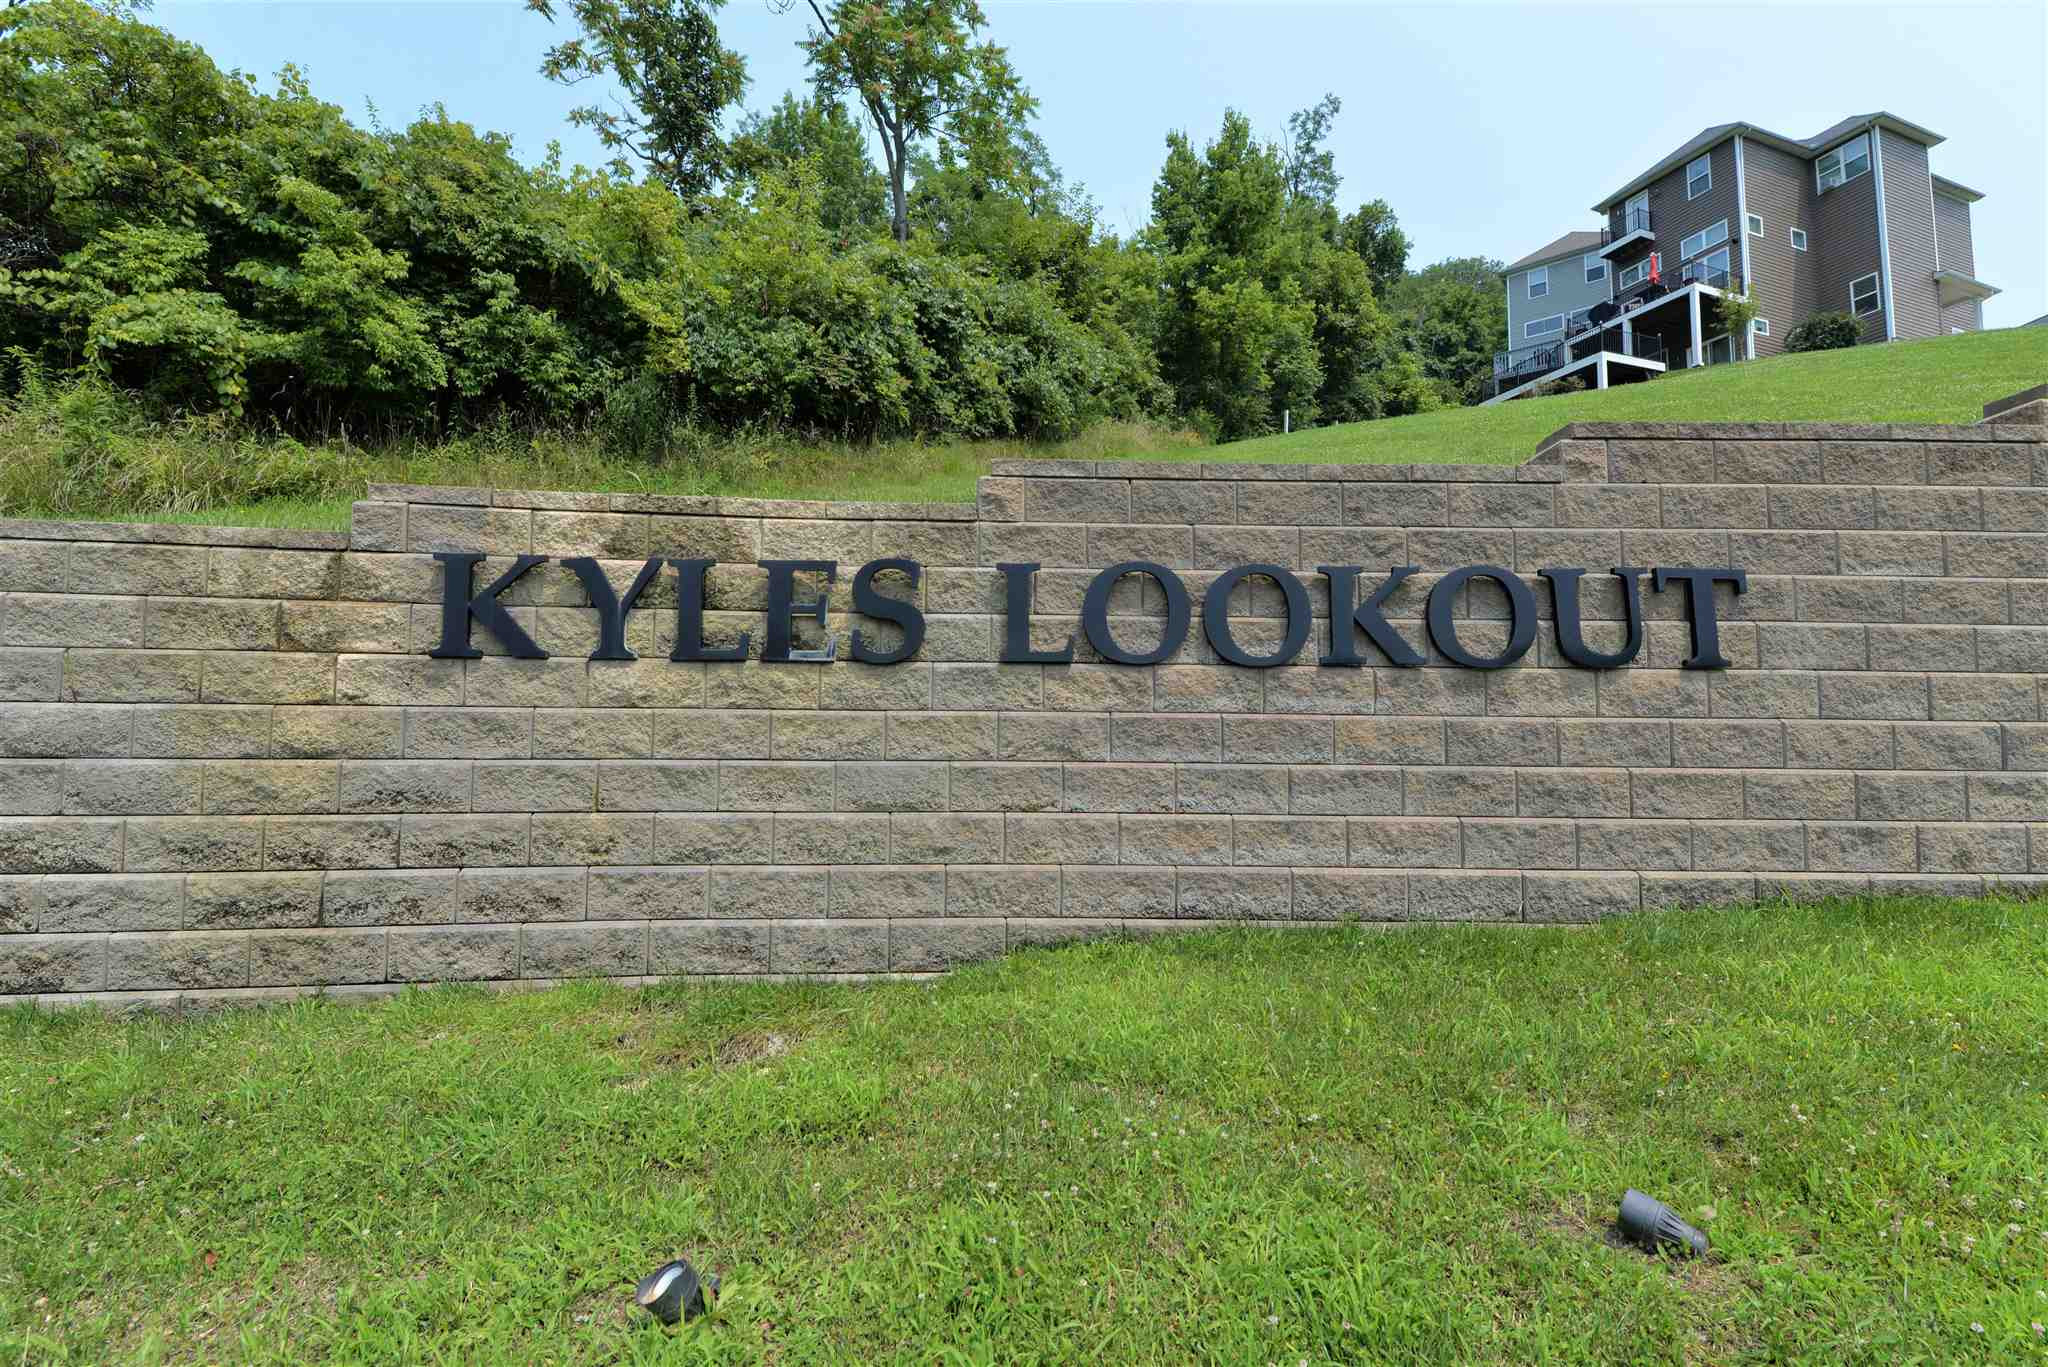 0 Kyles Lookout Fort Wright, KY